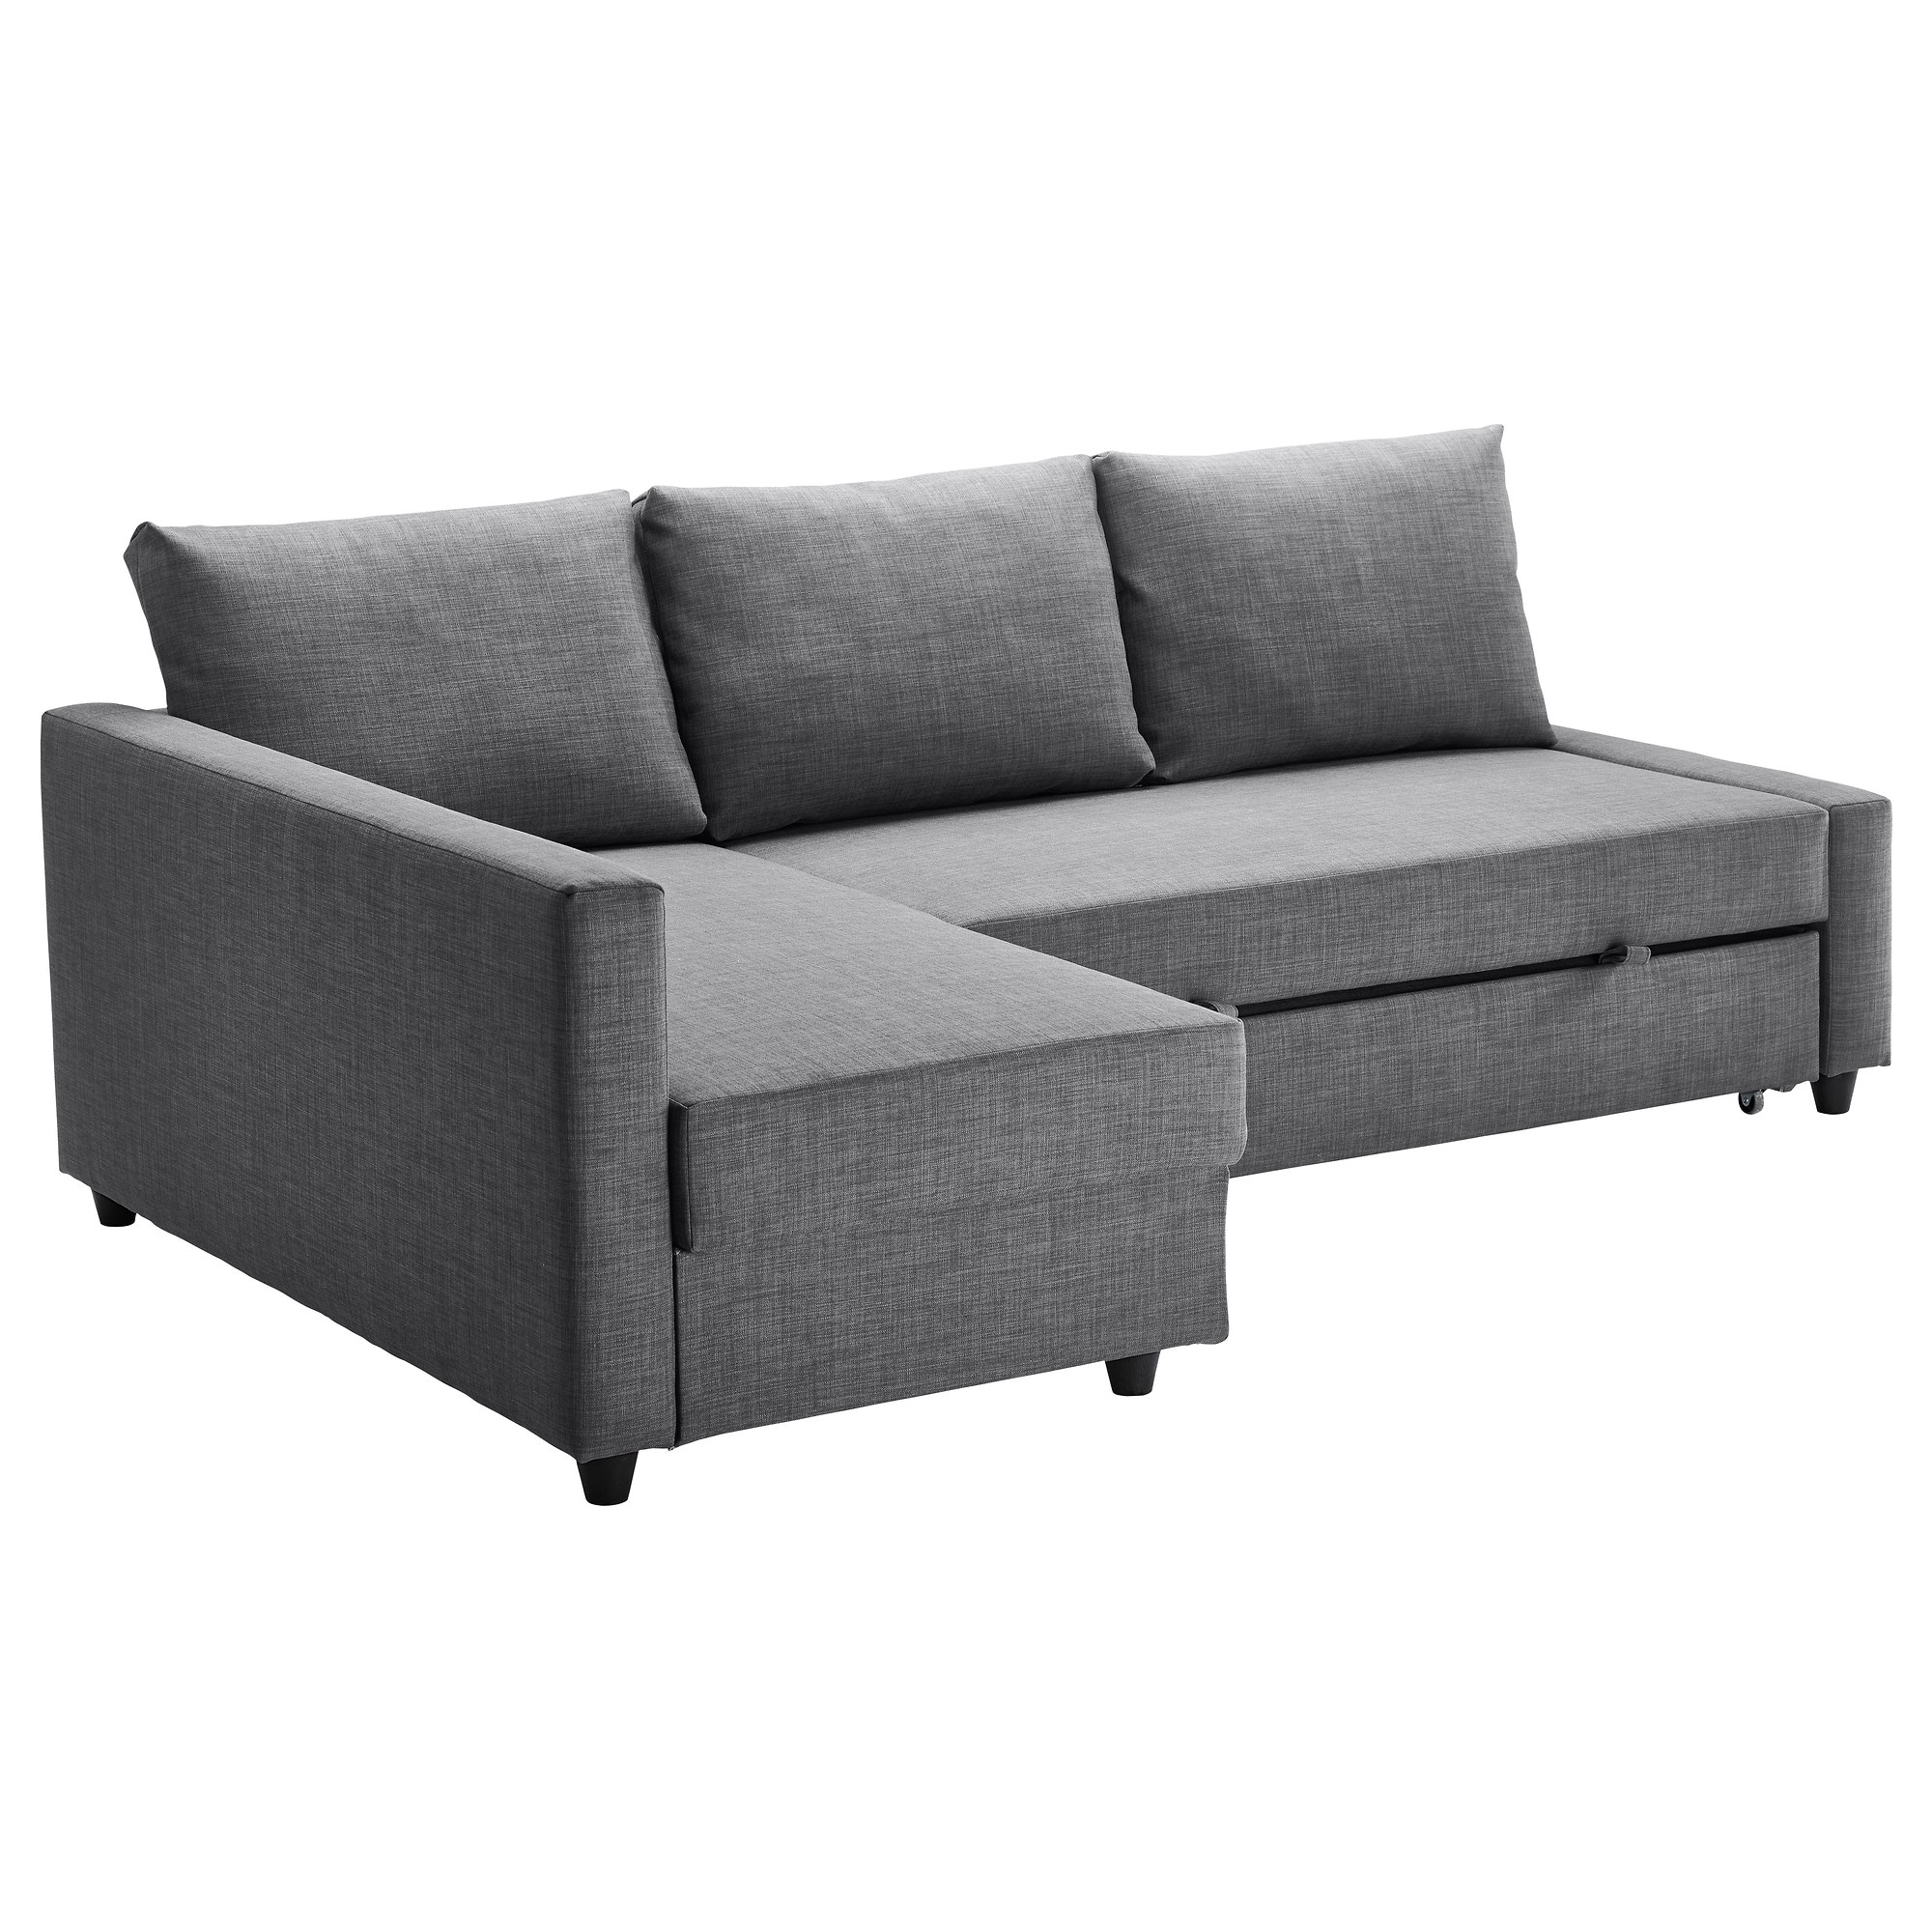 Famous Sofa Chairs With Regard To Friheten Corner Sofa Bed With Storage Skiftebo Dark Grey – Ikea (View 6 of 20)